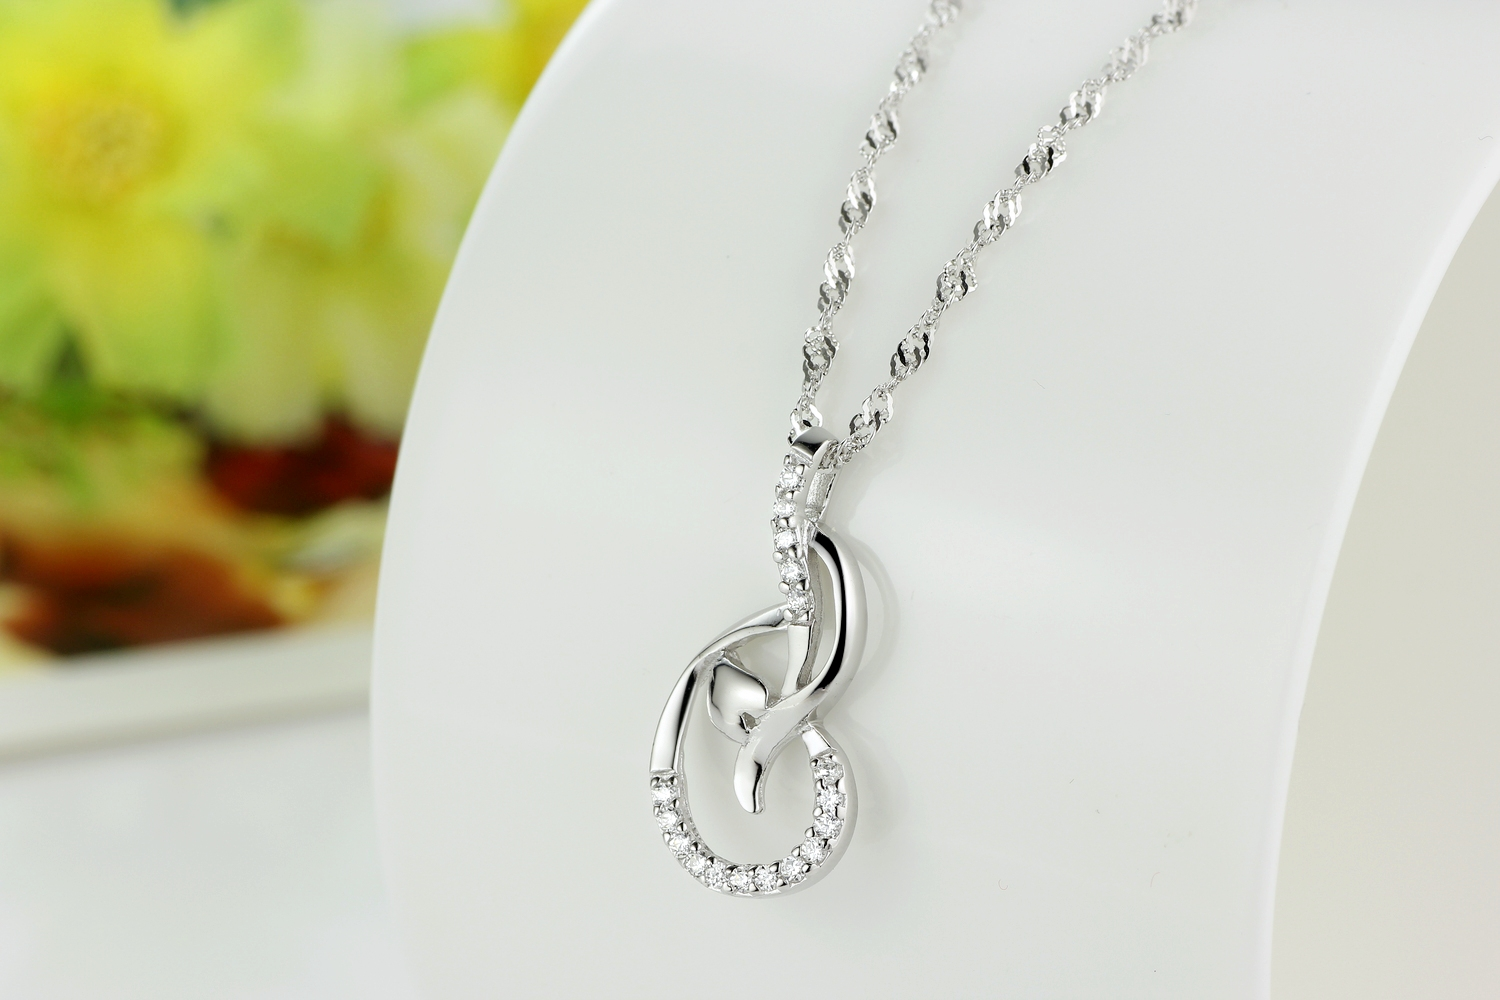 Genuine 100 925 sterling silver paved gem stone diamond dance genuine 100 925 sterling silver paved gem stone diamond dance notes circled love heart pendant mozeypictures Image collections